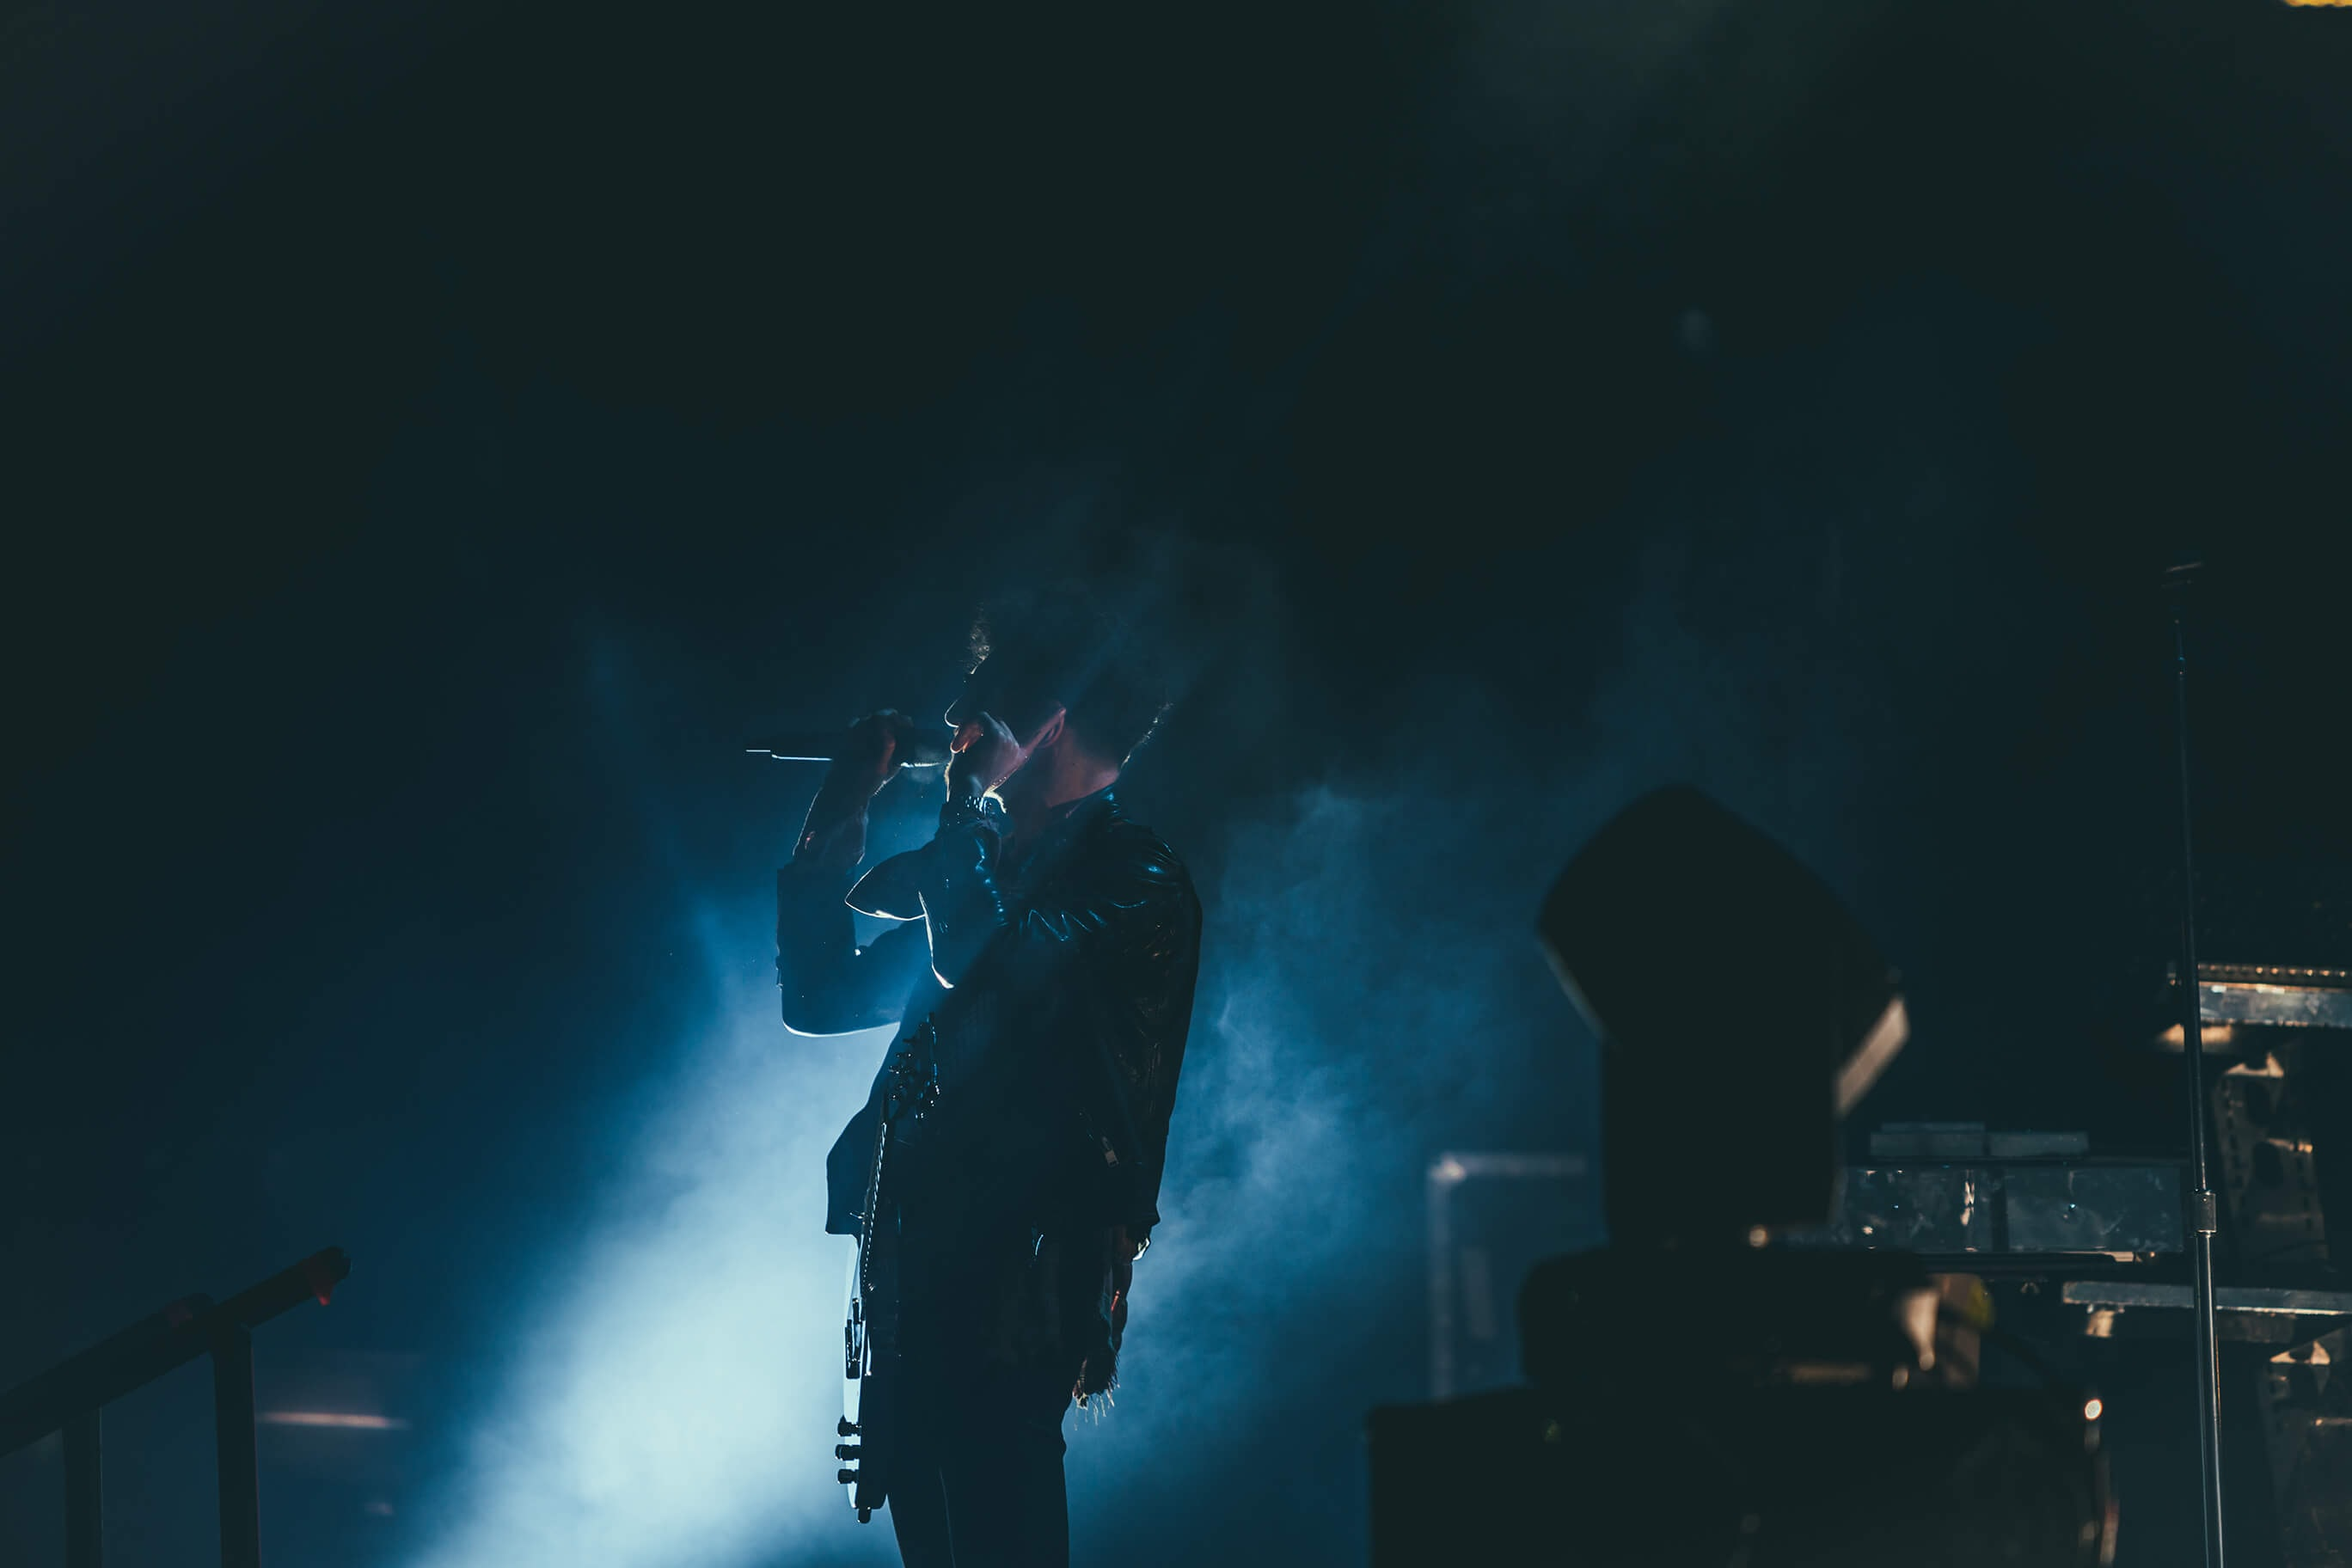 A dim shot of a musician with a microphone on stage engulfed in bluish smoke